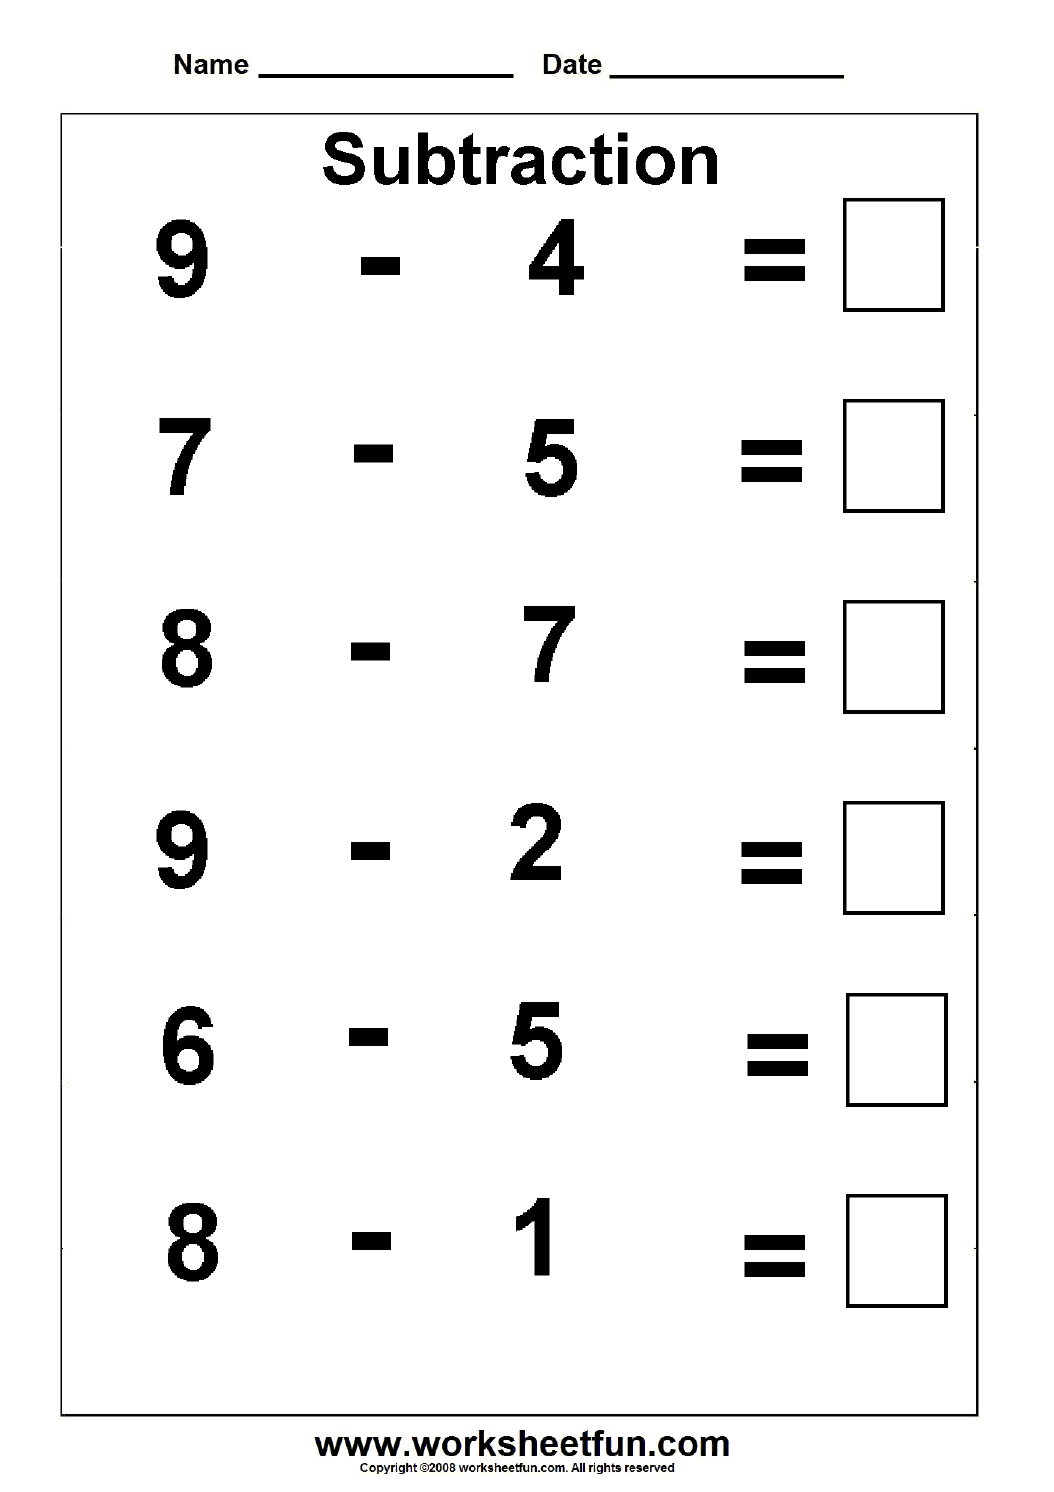 Subtraction 3 Kindergarten Subtraction Worksheets Free